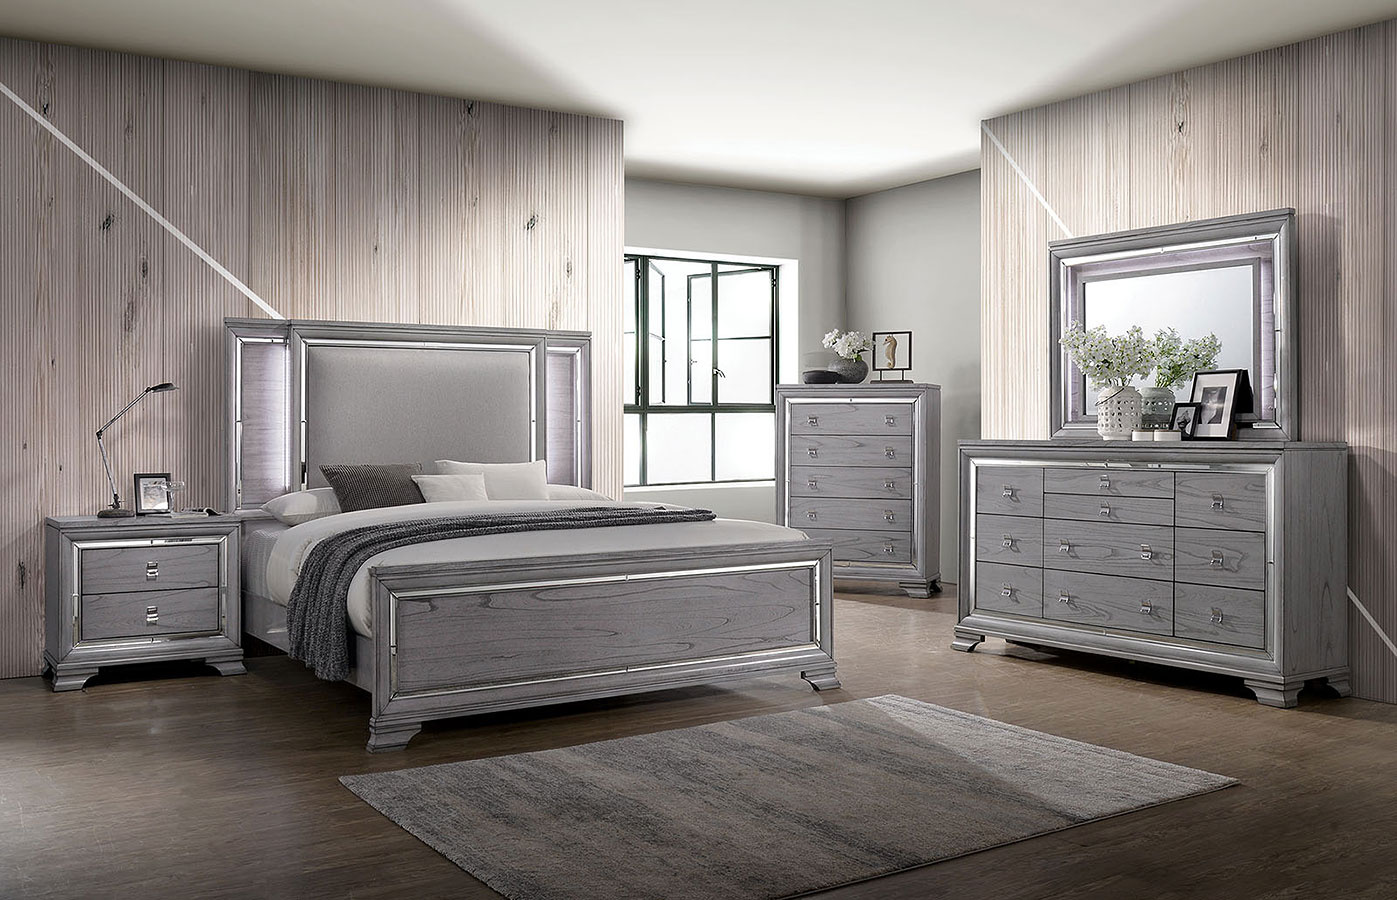 CM7579 Alanis Bedroom Set